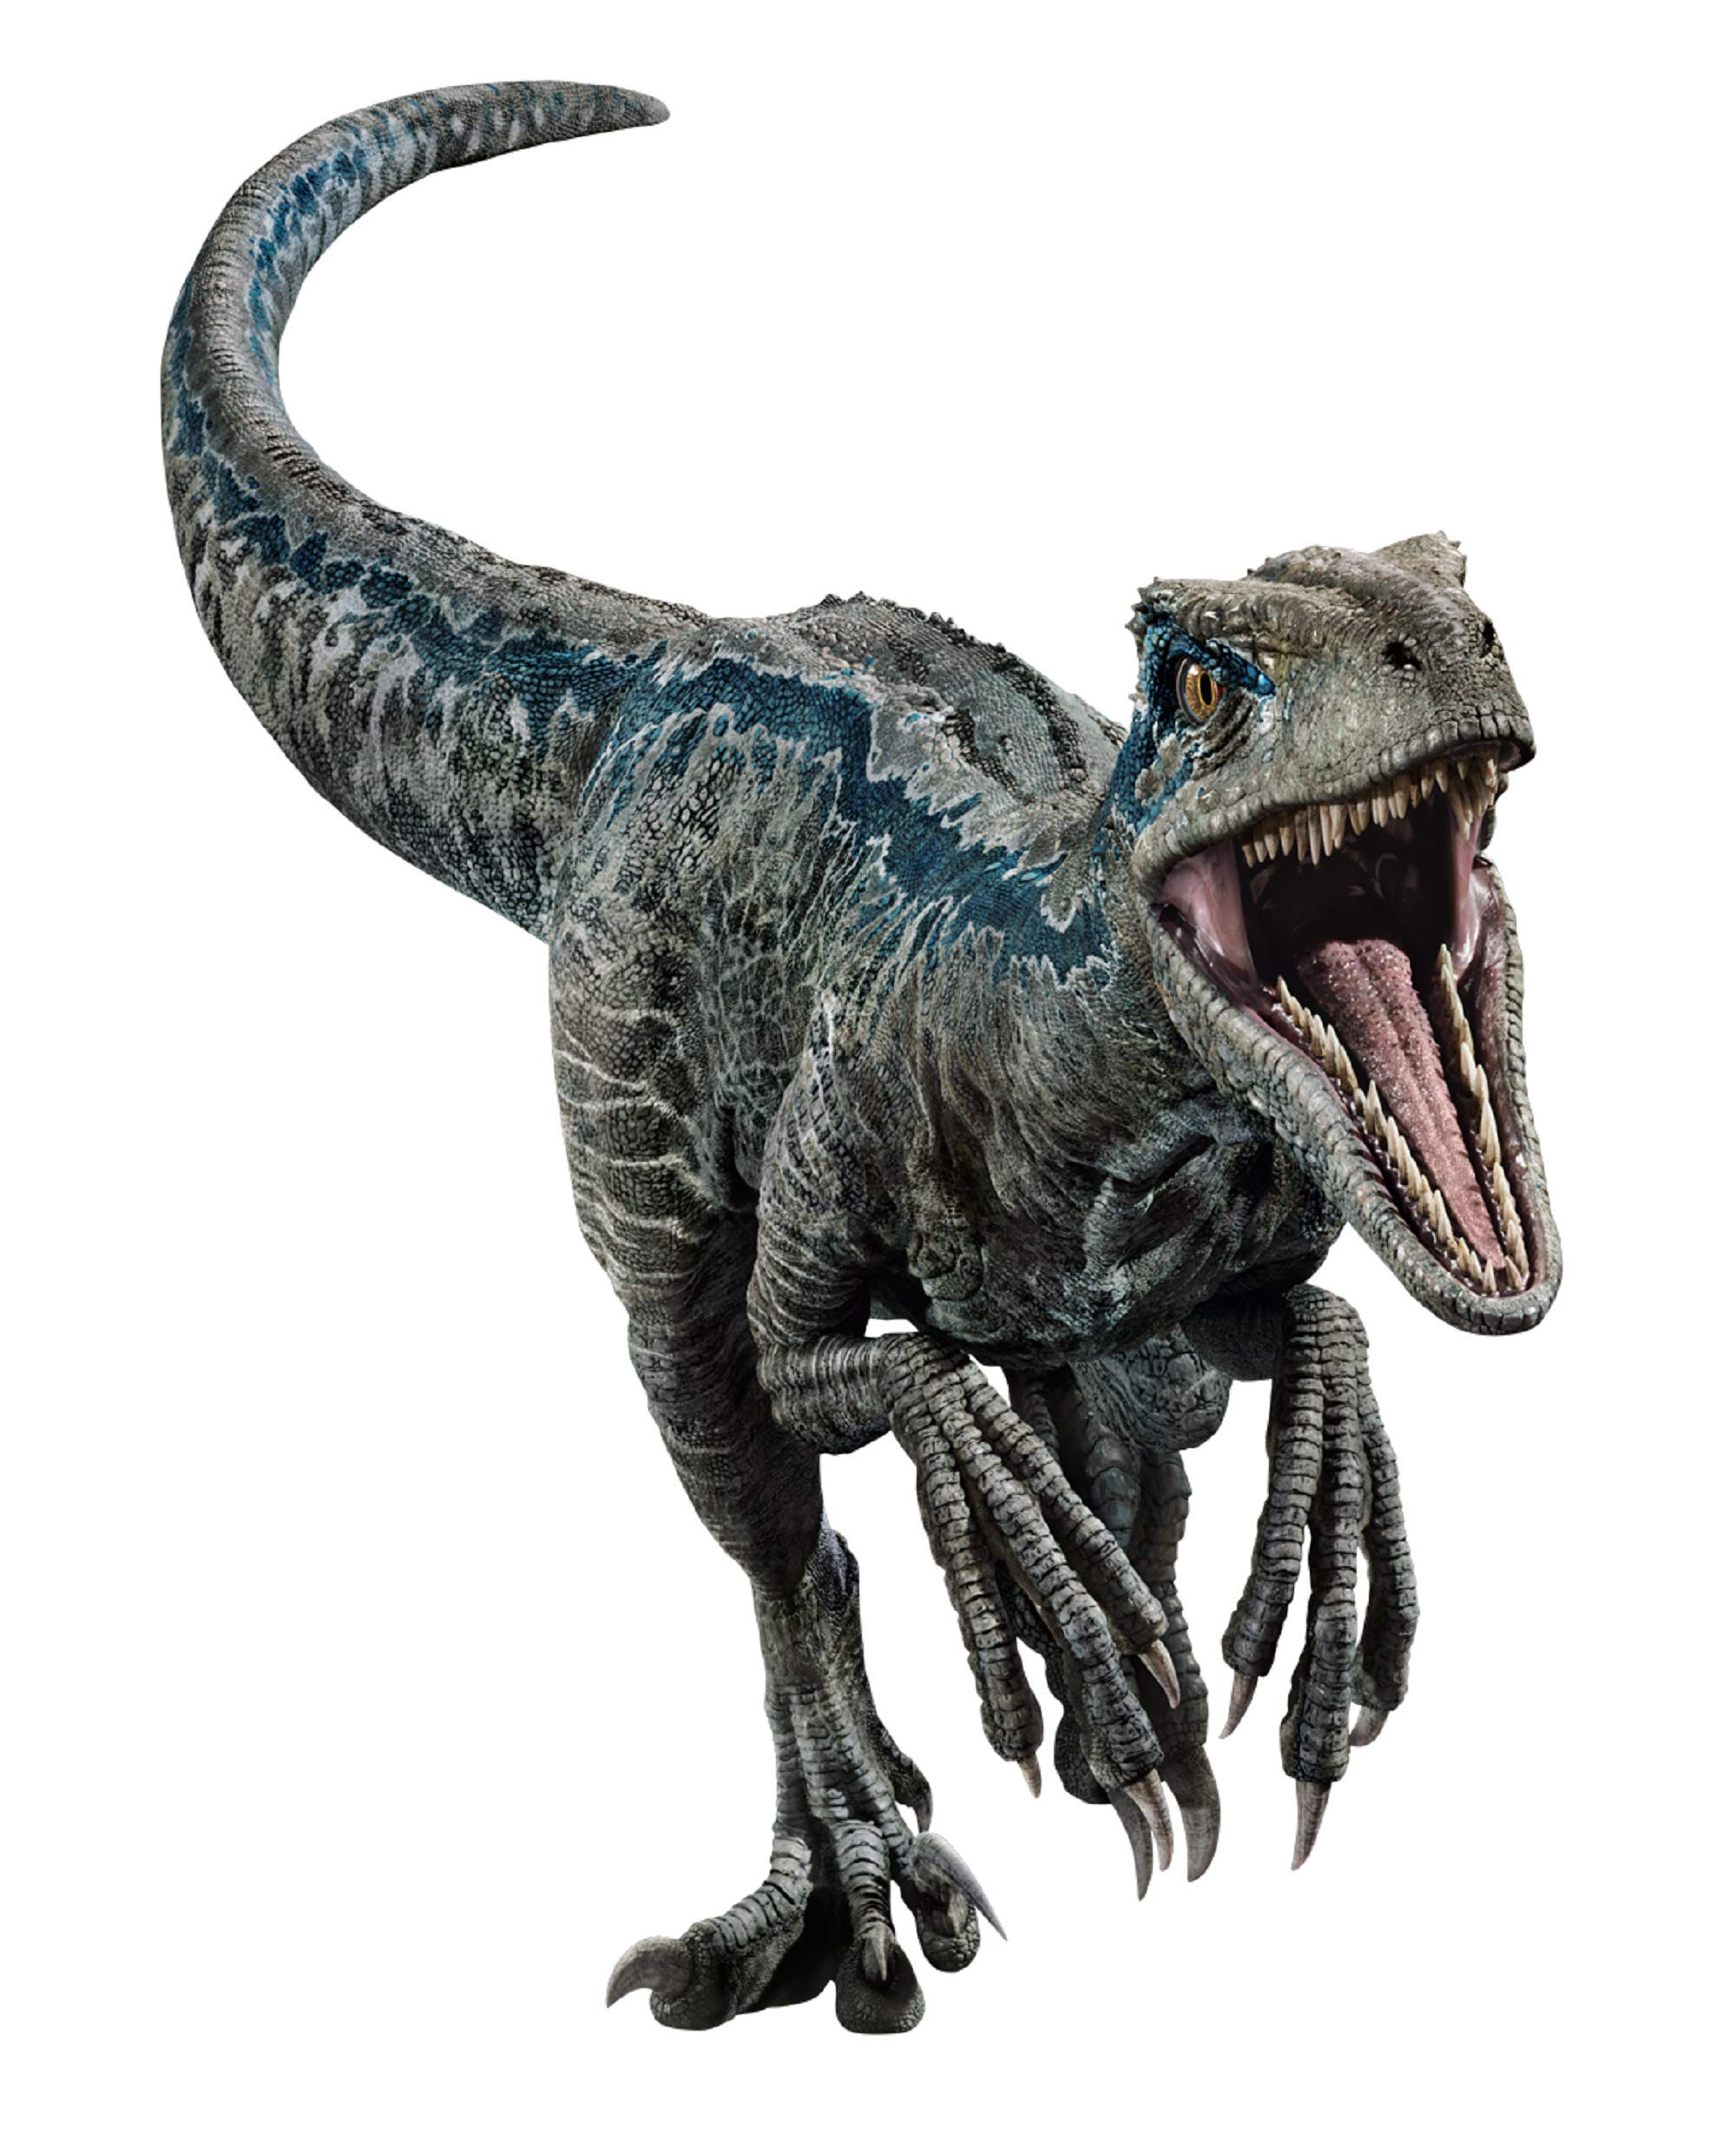 FATHEAD Velociraptor Blue - Jurassic World: Fallen Kingdom - Giant Officially Licensed Removable Wall Decal Multicolor by FATHEAD (Image #3)